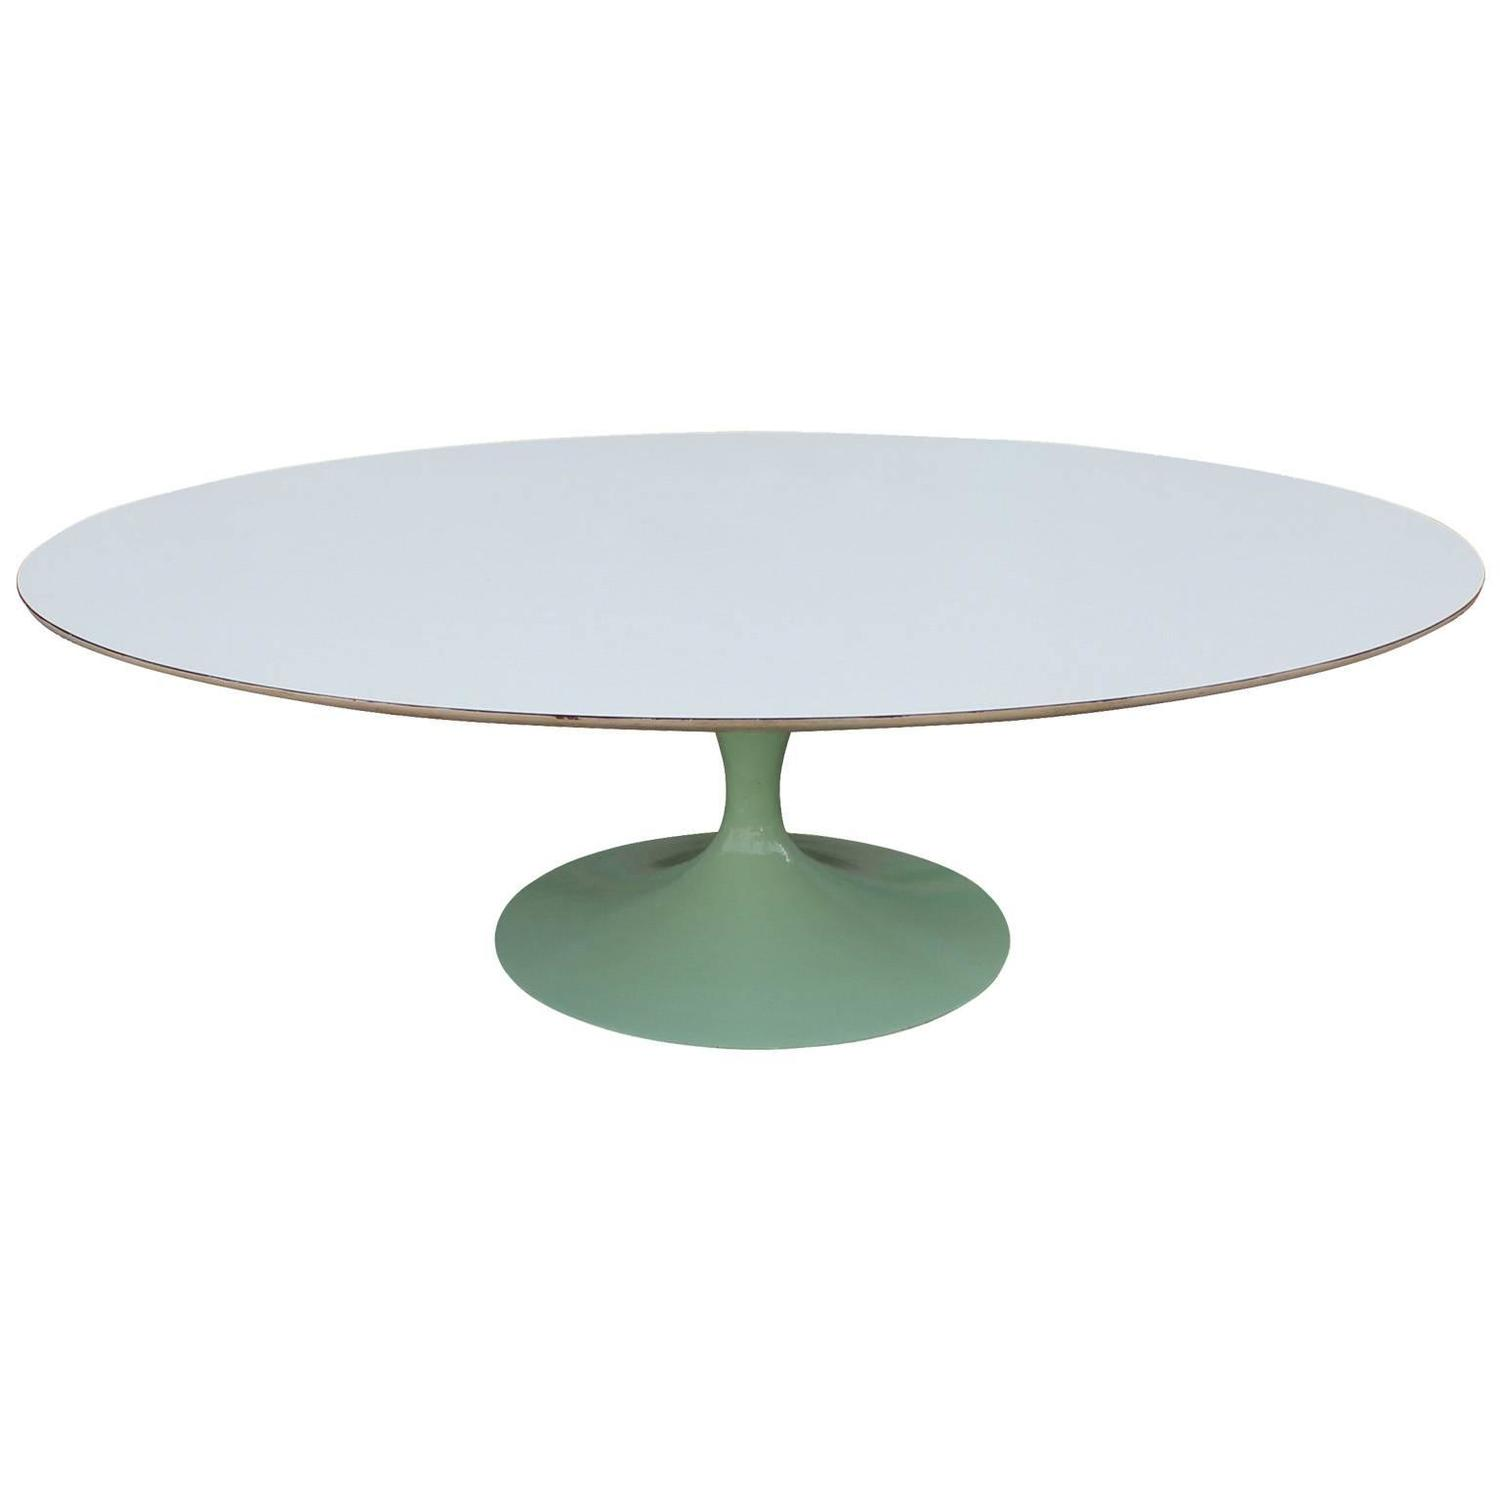 Eero Saarinen For Knoll Oval Tulip Coffee Table At 1stdibs